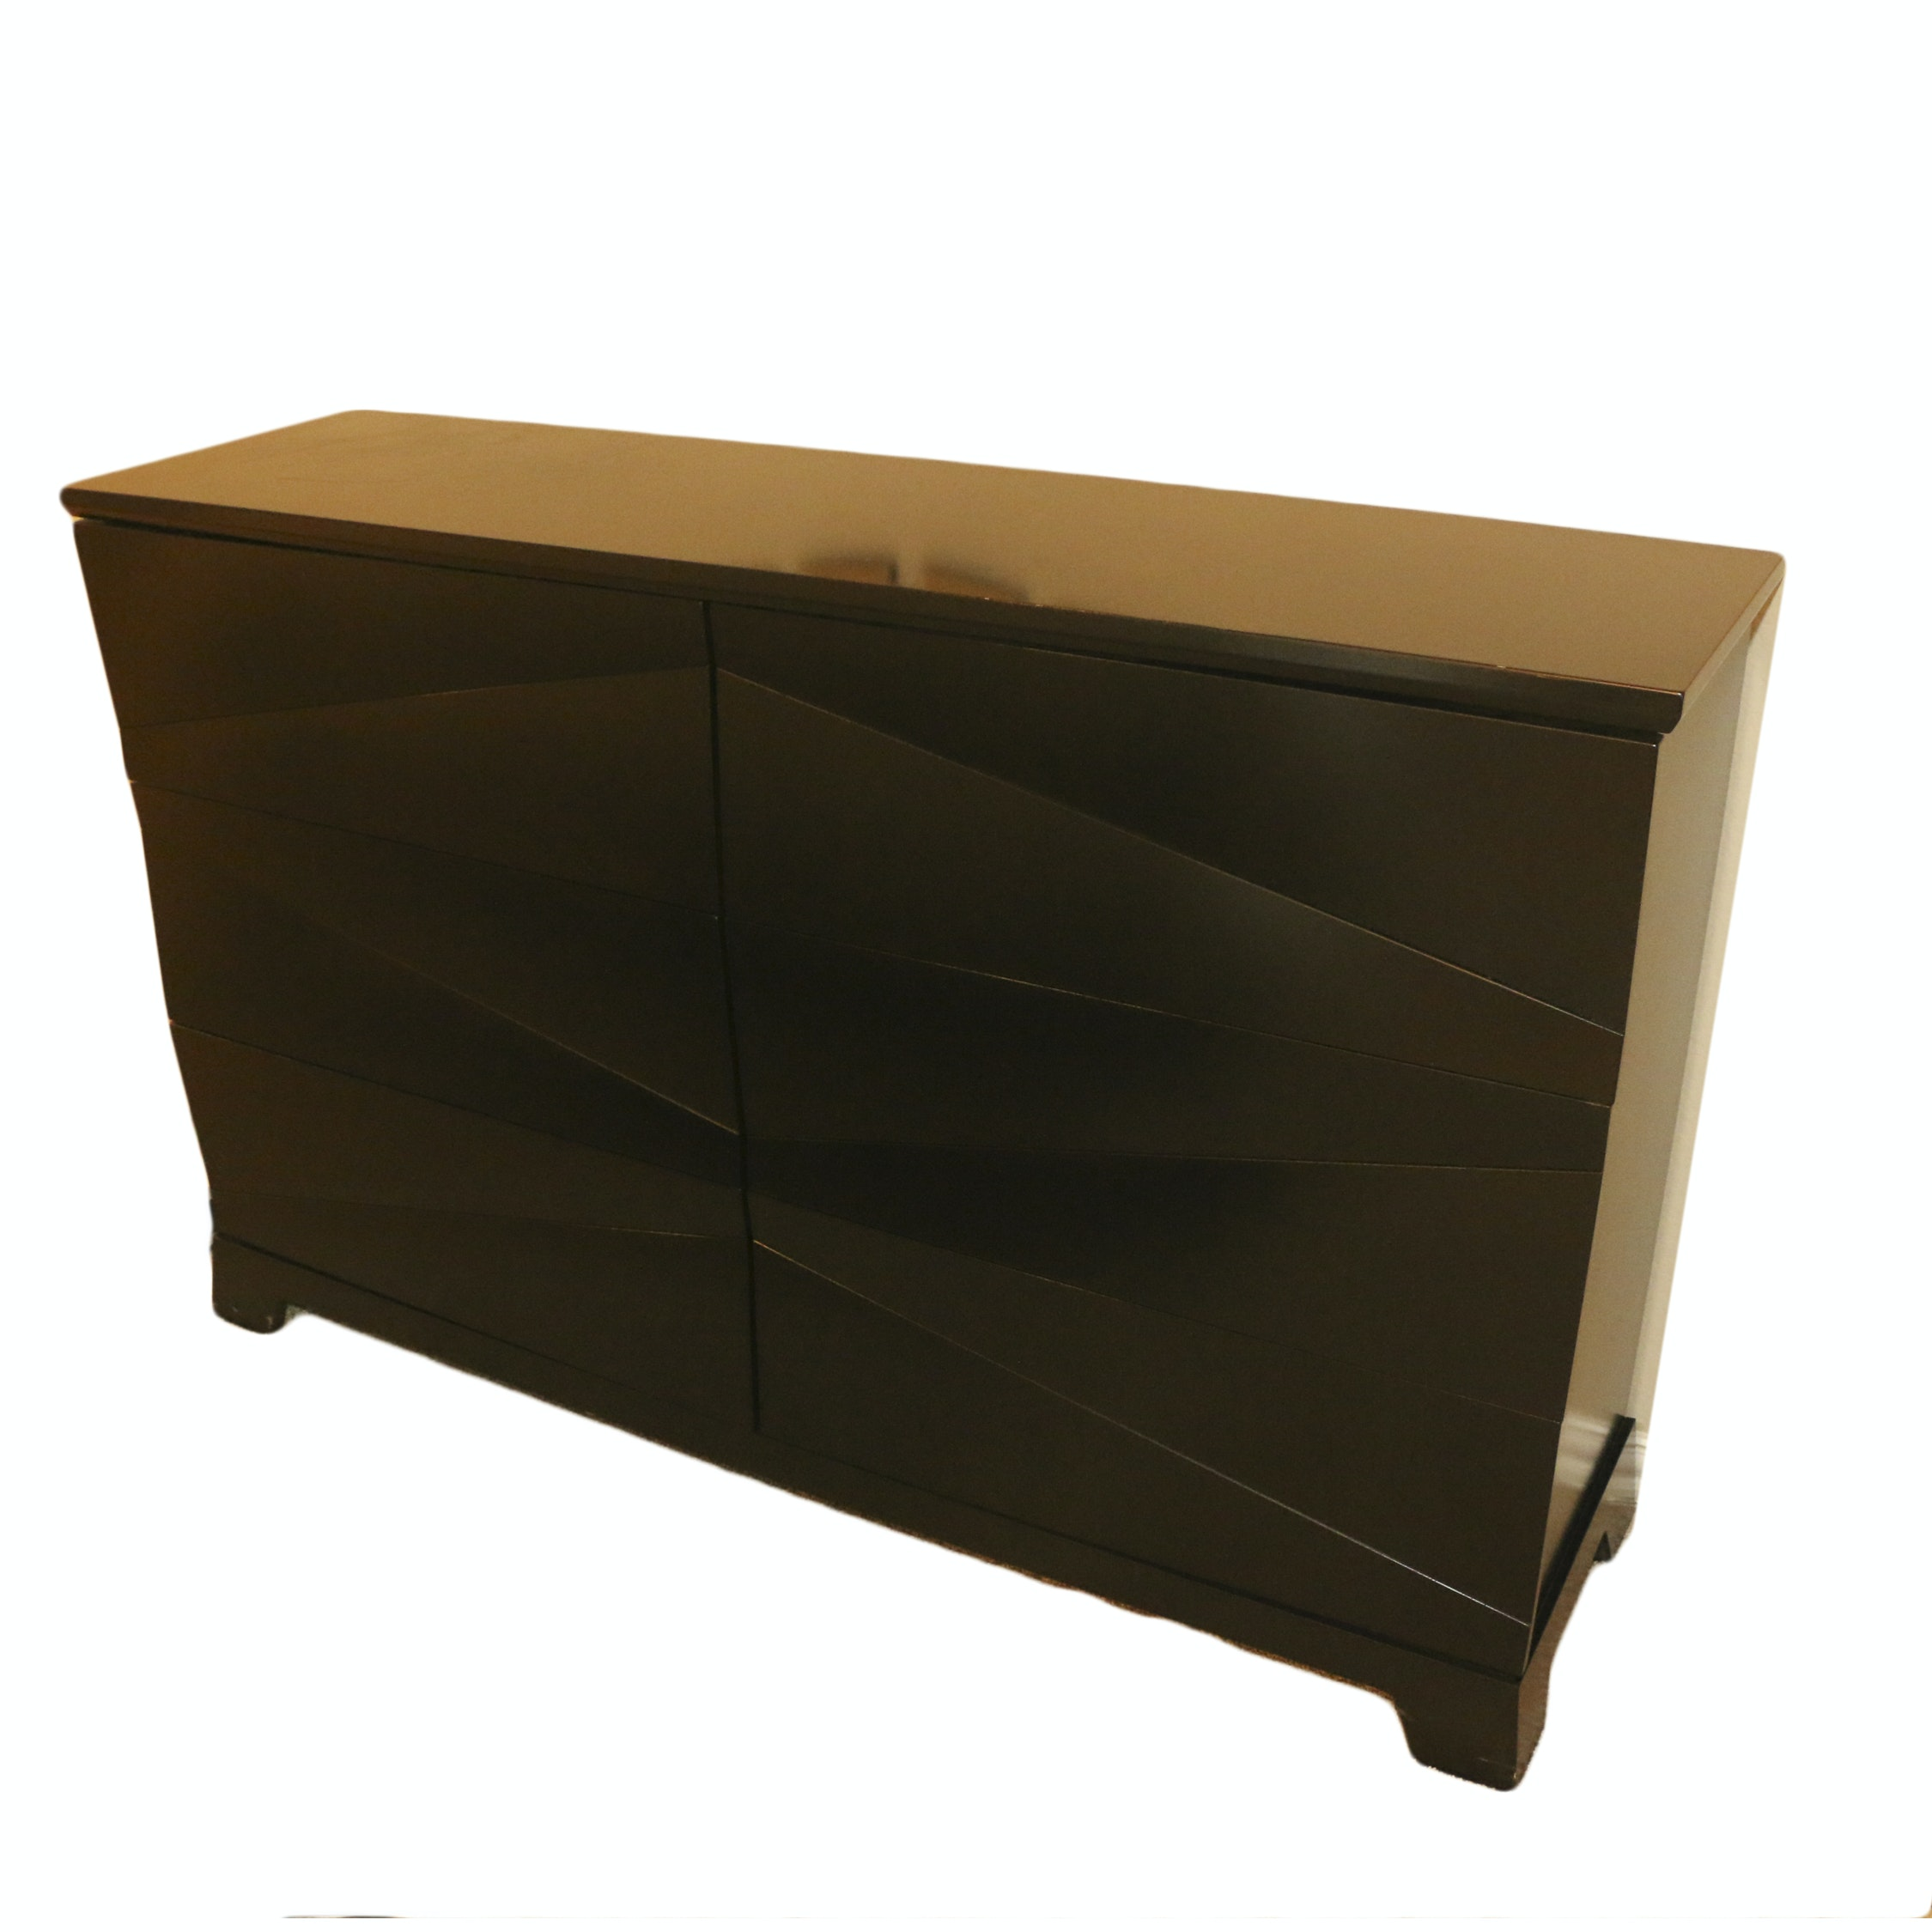 Diamond Faceted Front Chest of Drawers, 21st Century